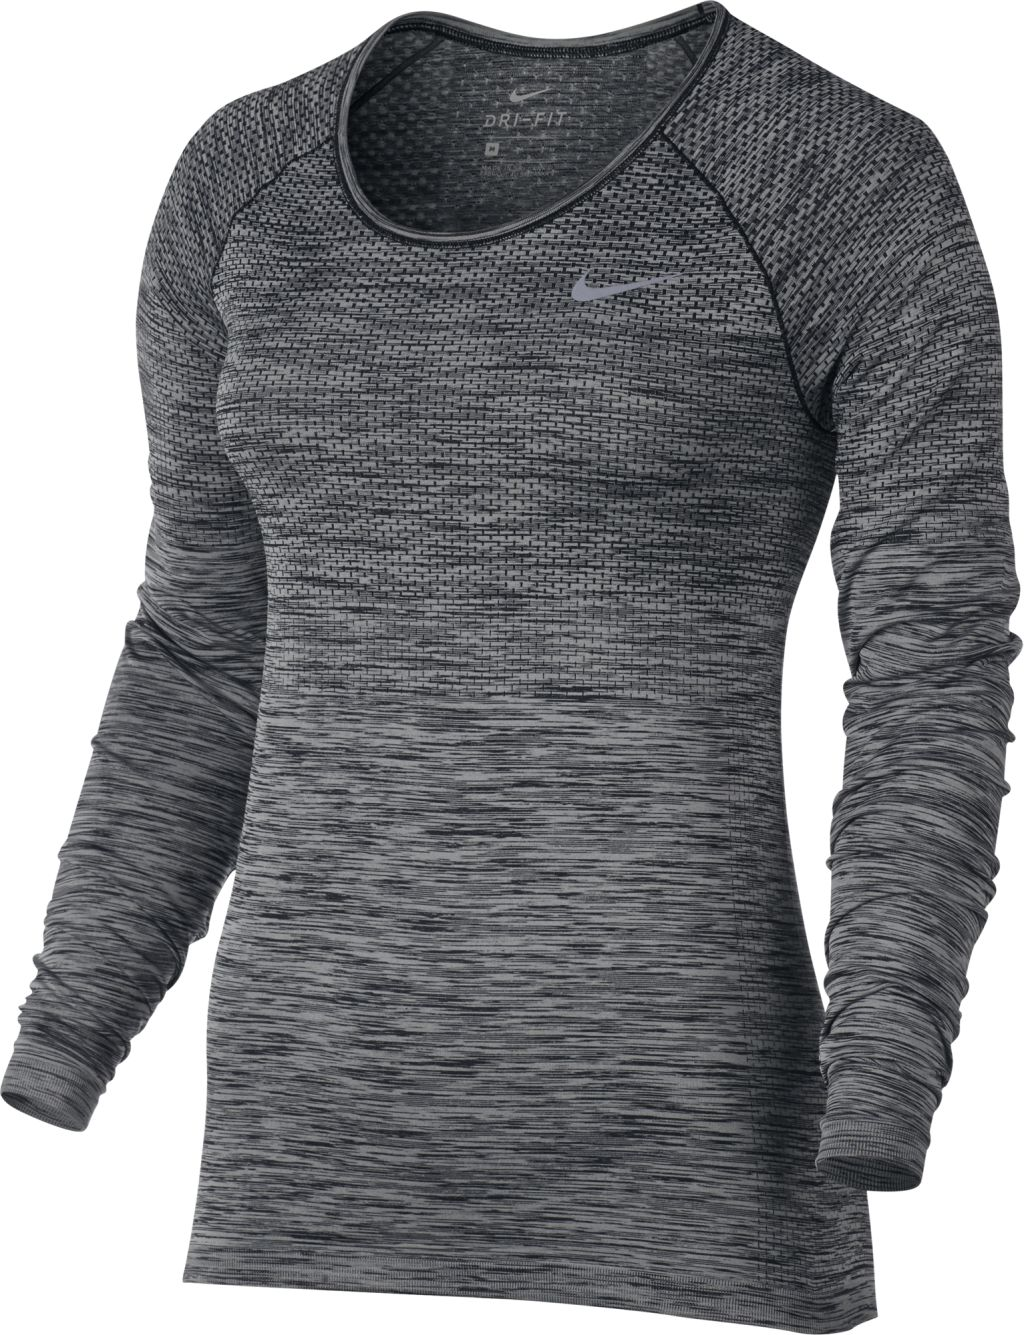 Nike Dri-FIT Knit LS Top W